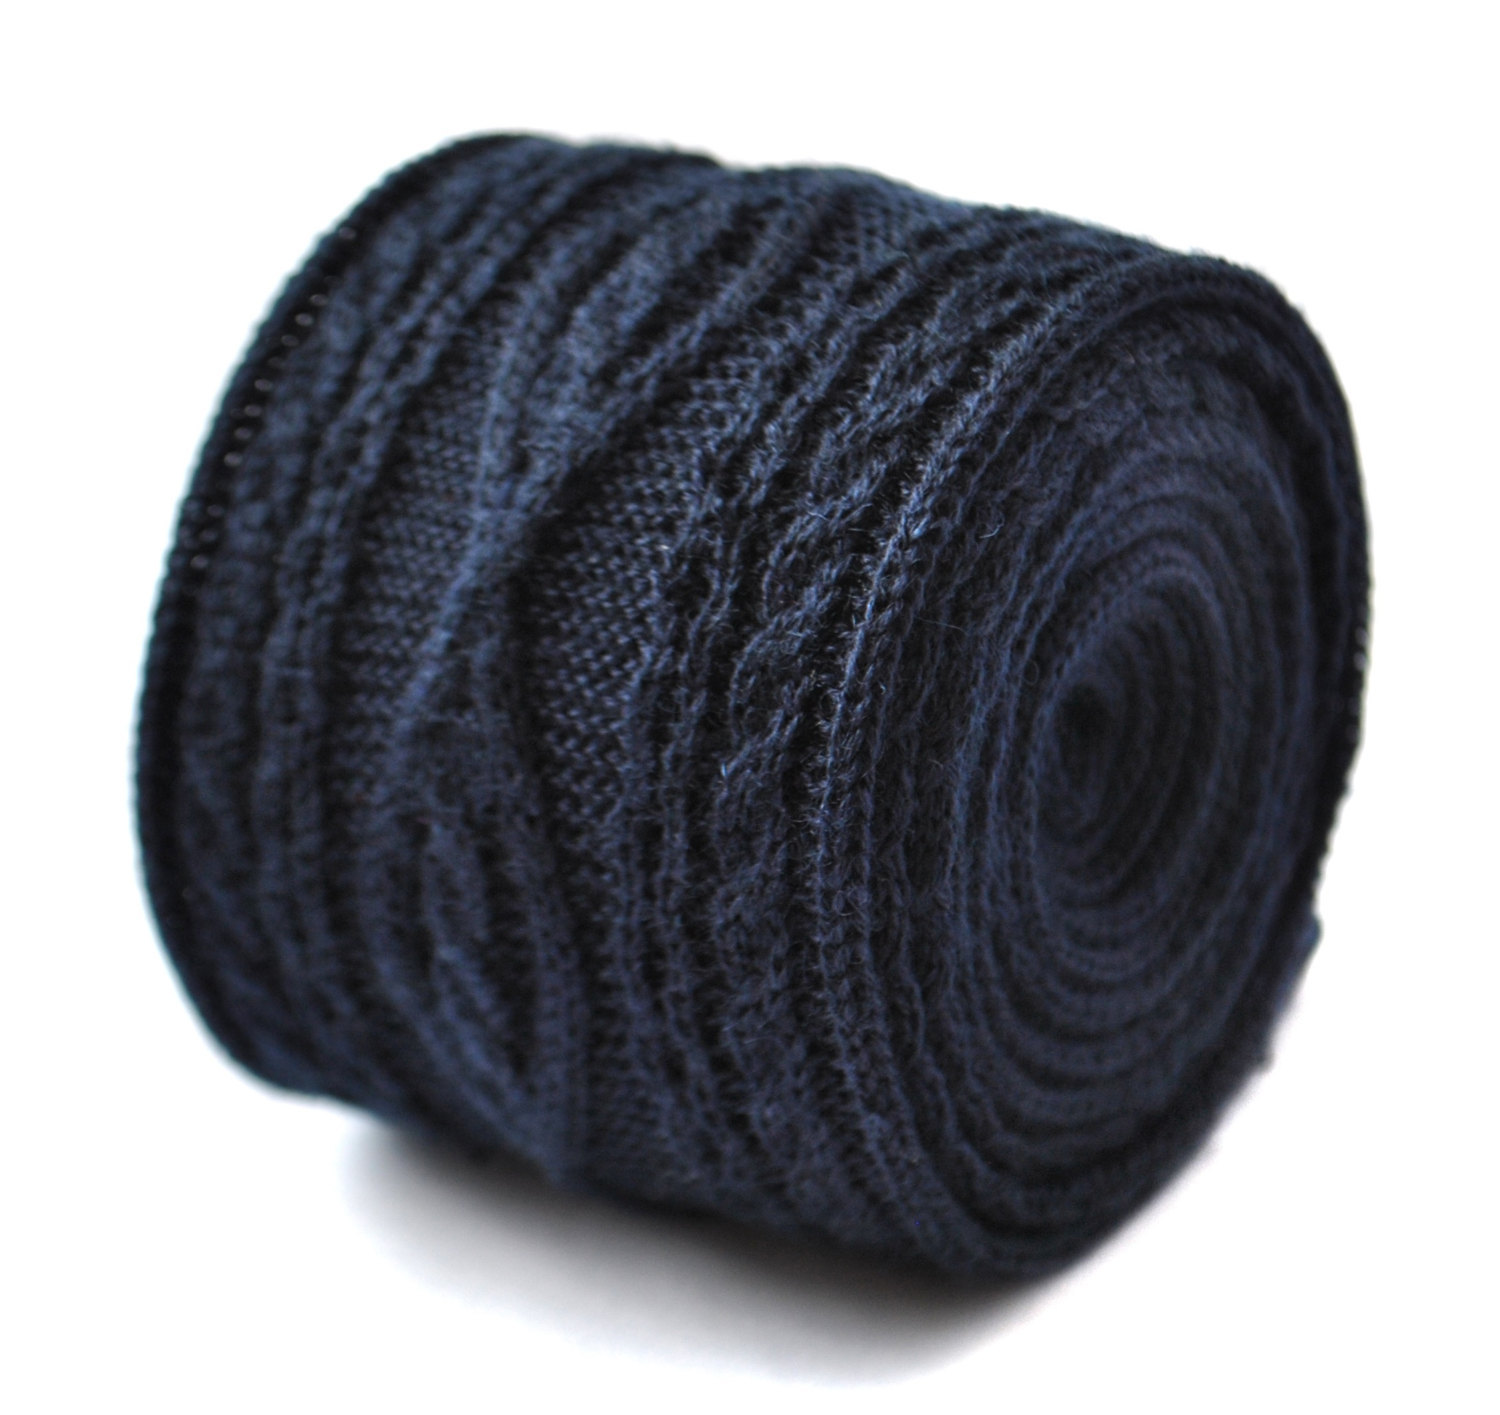 plain navy blue knitted tie with cable knit design by Frederick Thomas FT2009